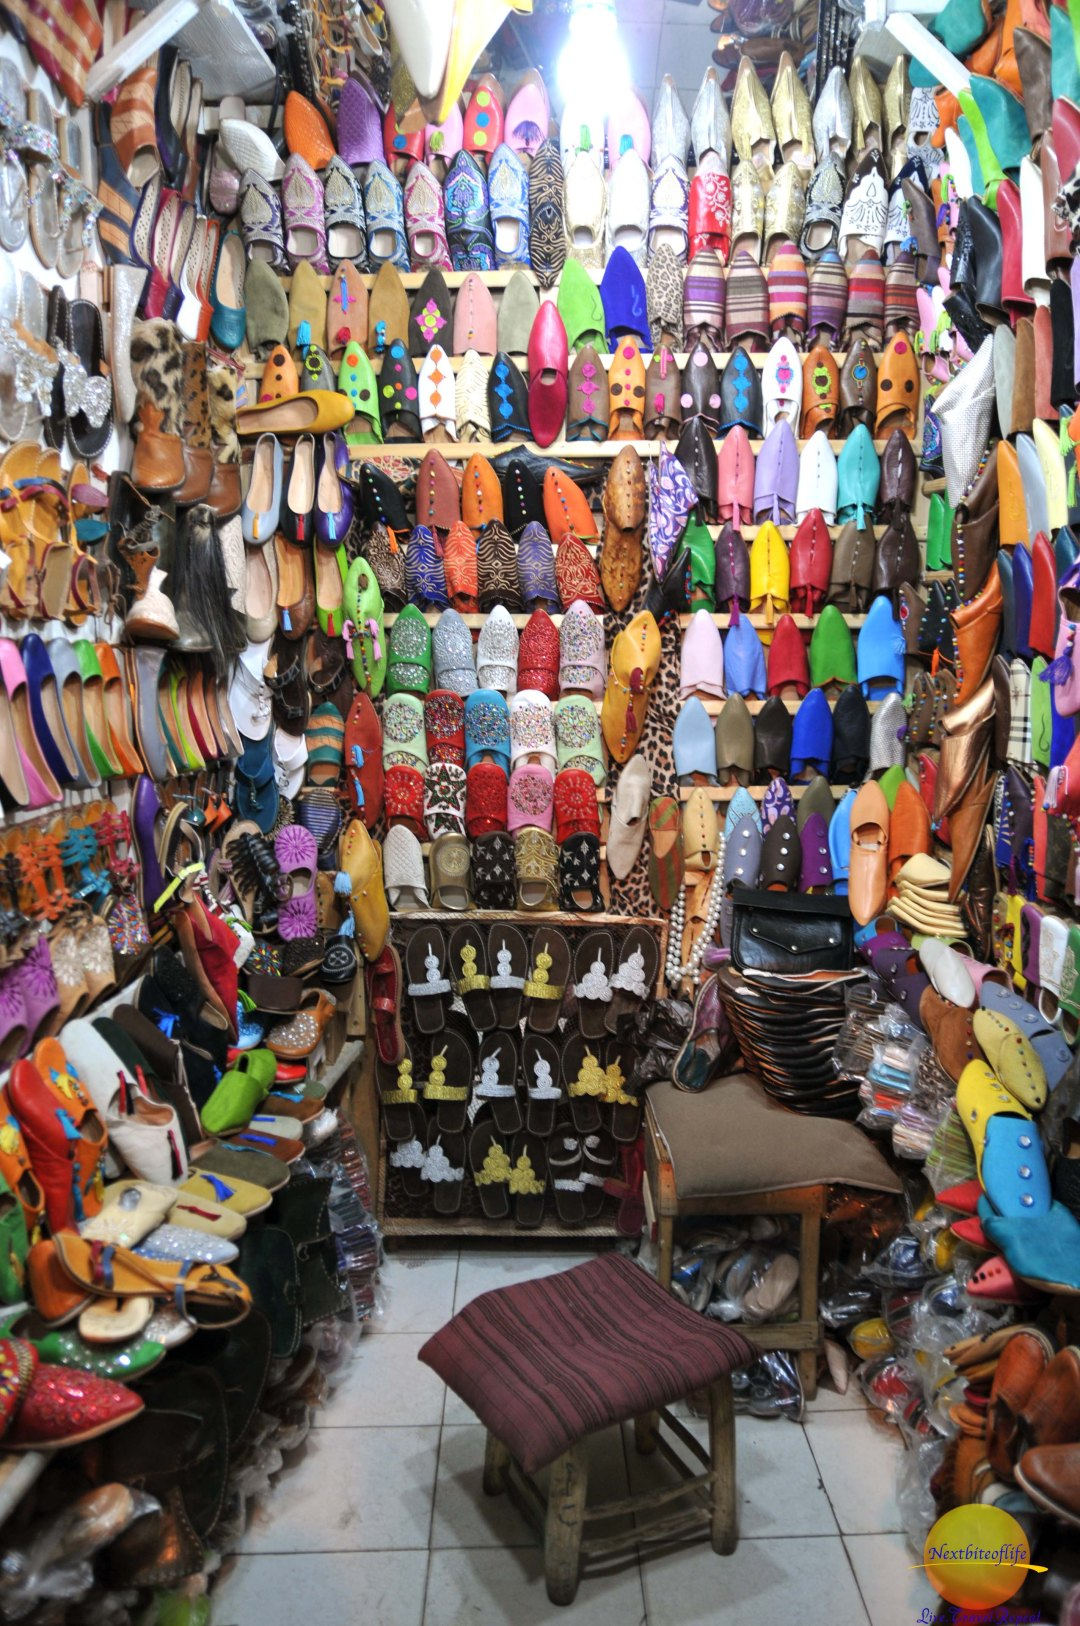 A typical shoe store in the Medina..